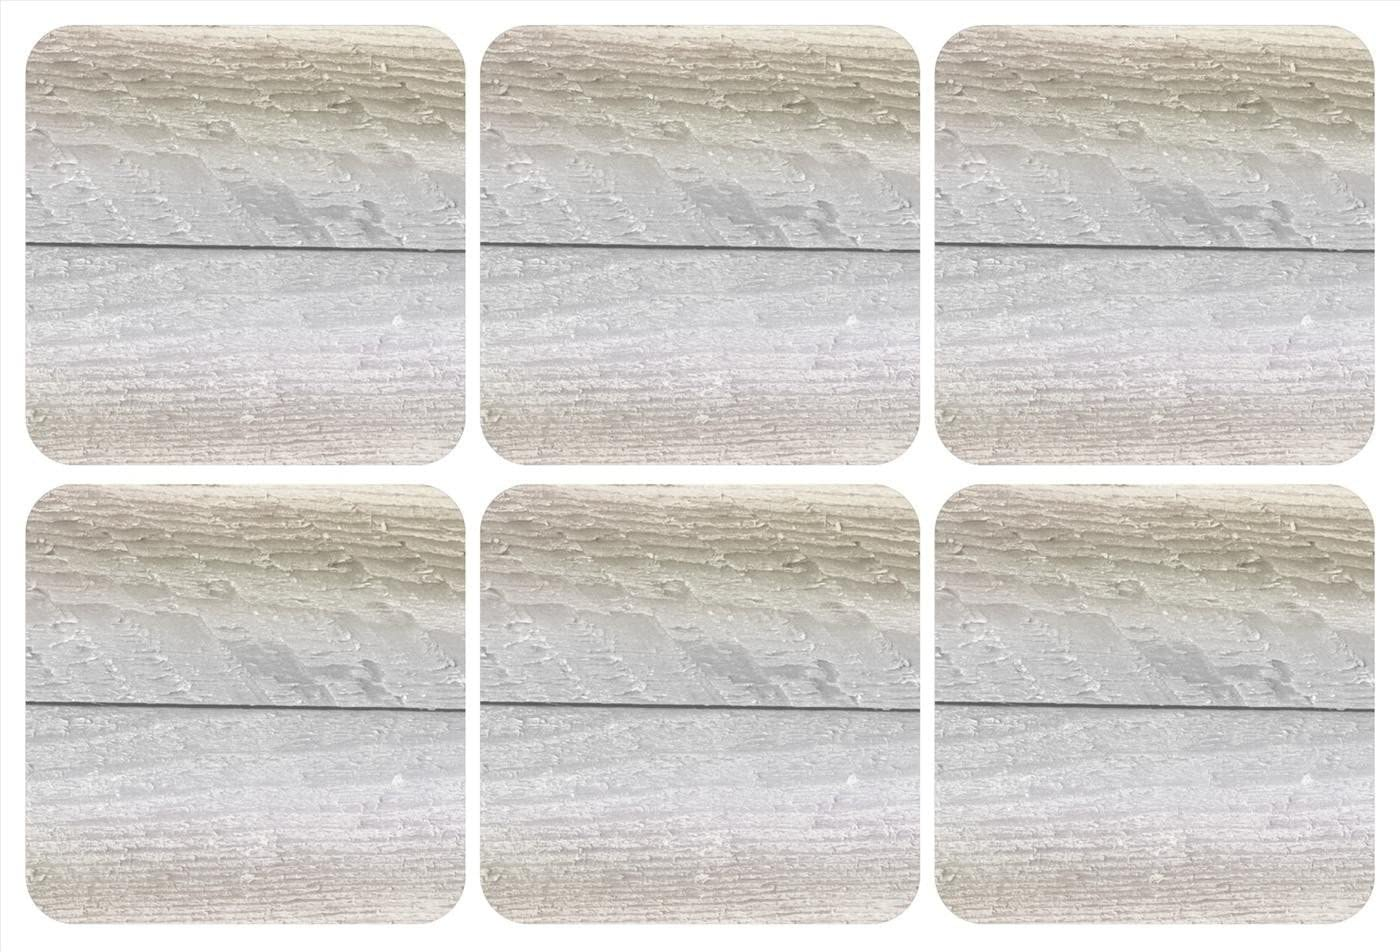 Pimpernel Driftwood Collection Coasters - Set of 6